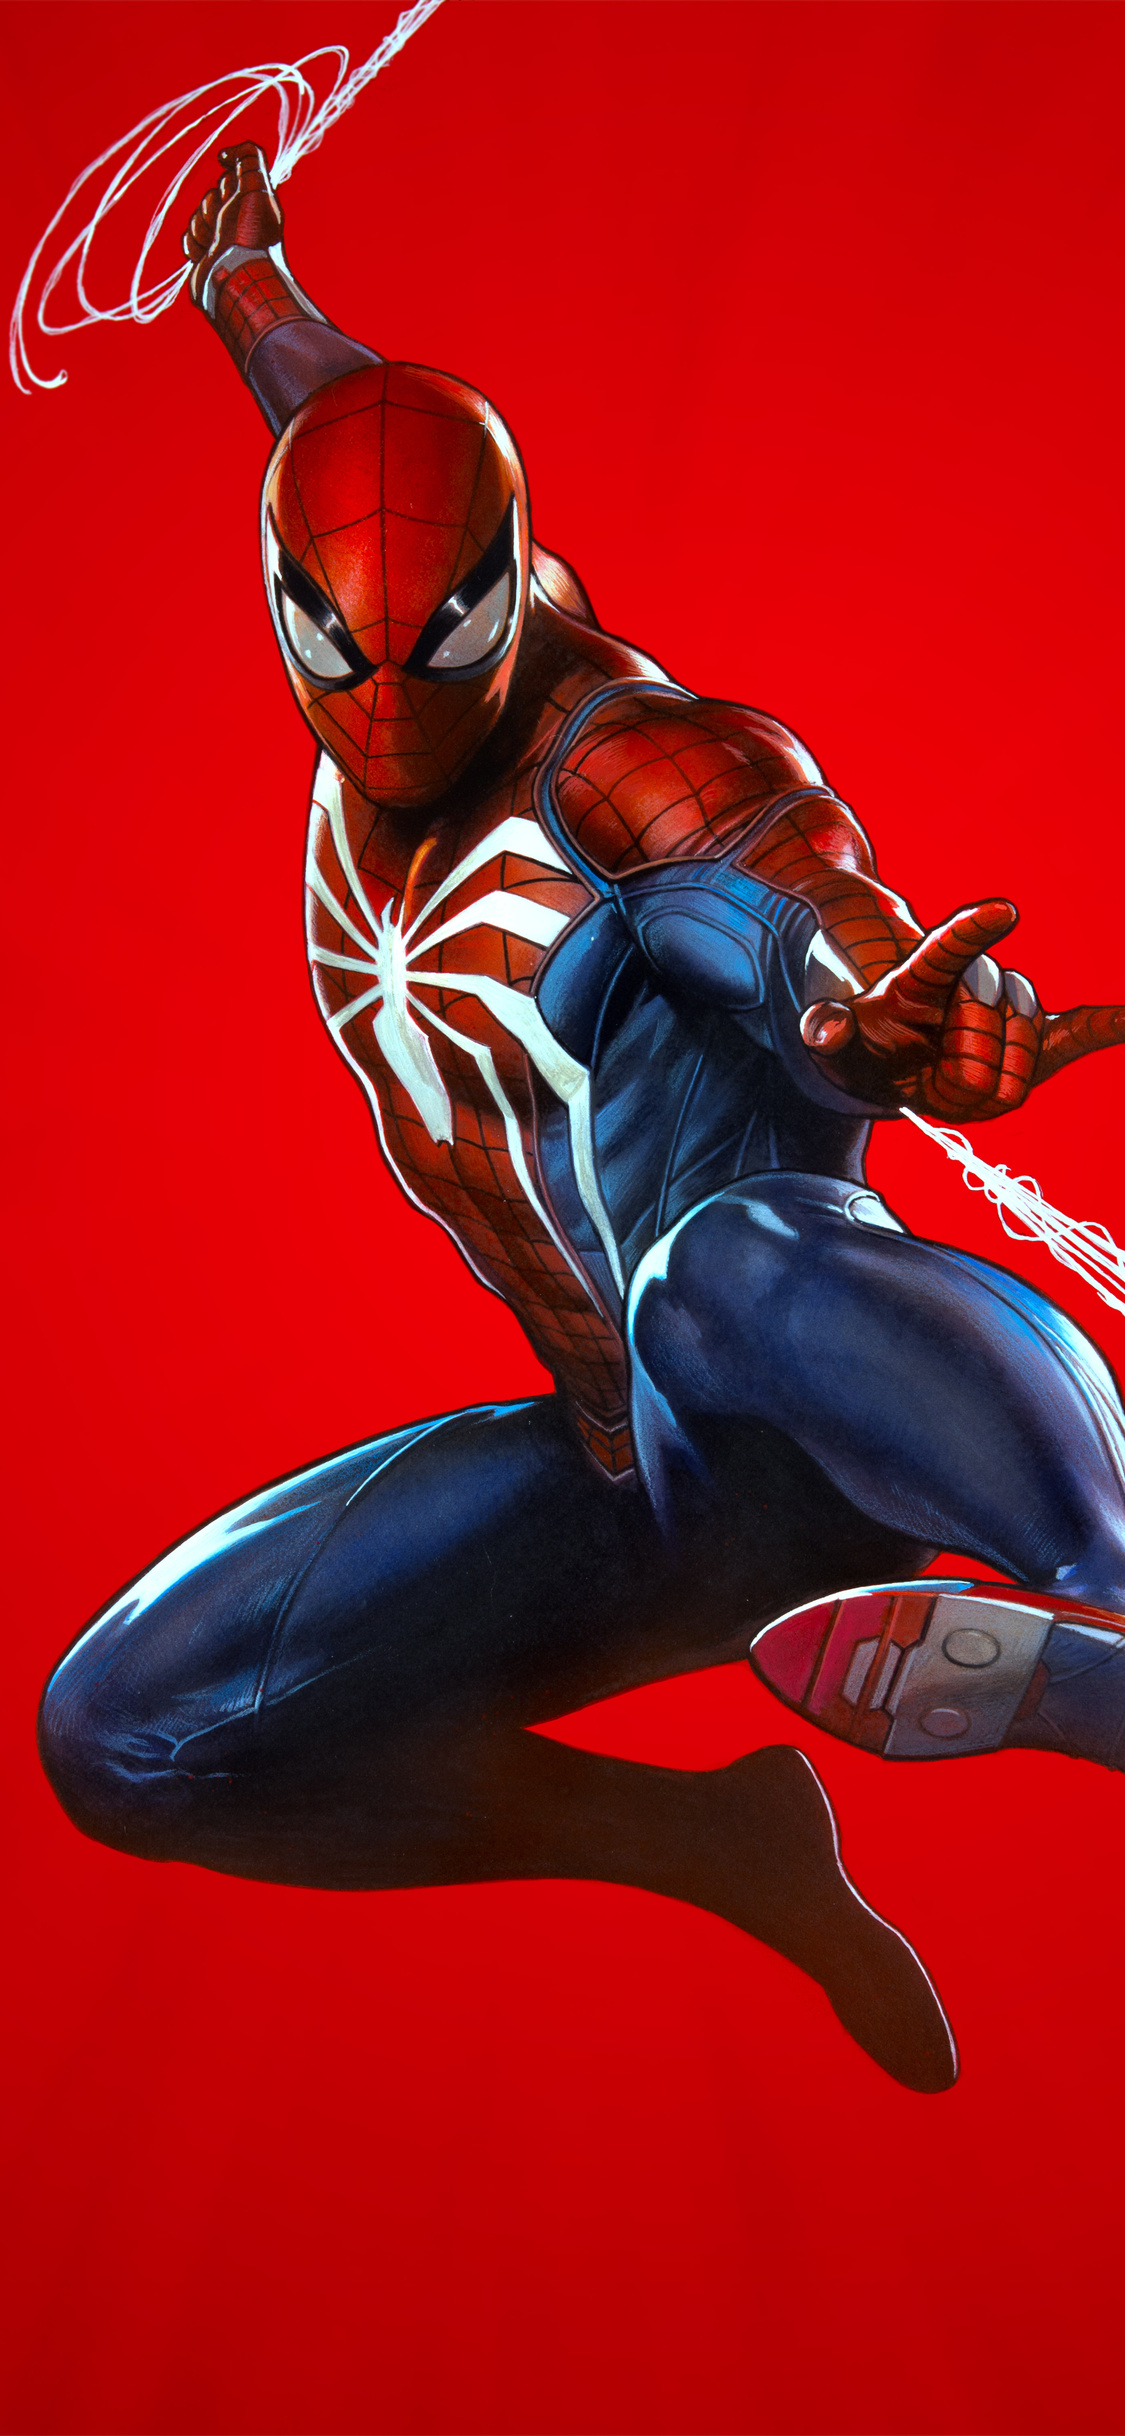 1125x2436 Marvels Spider Man Ps4 Theme Art 10k Iphone Xs Iphone 10